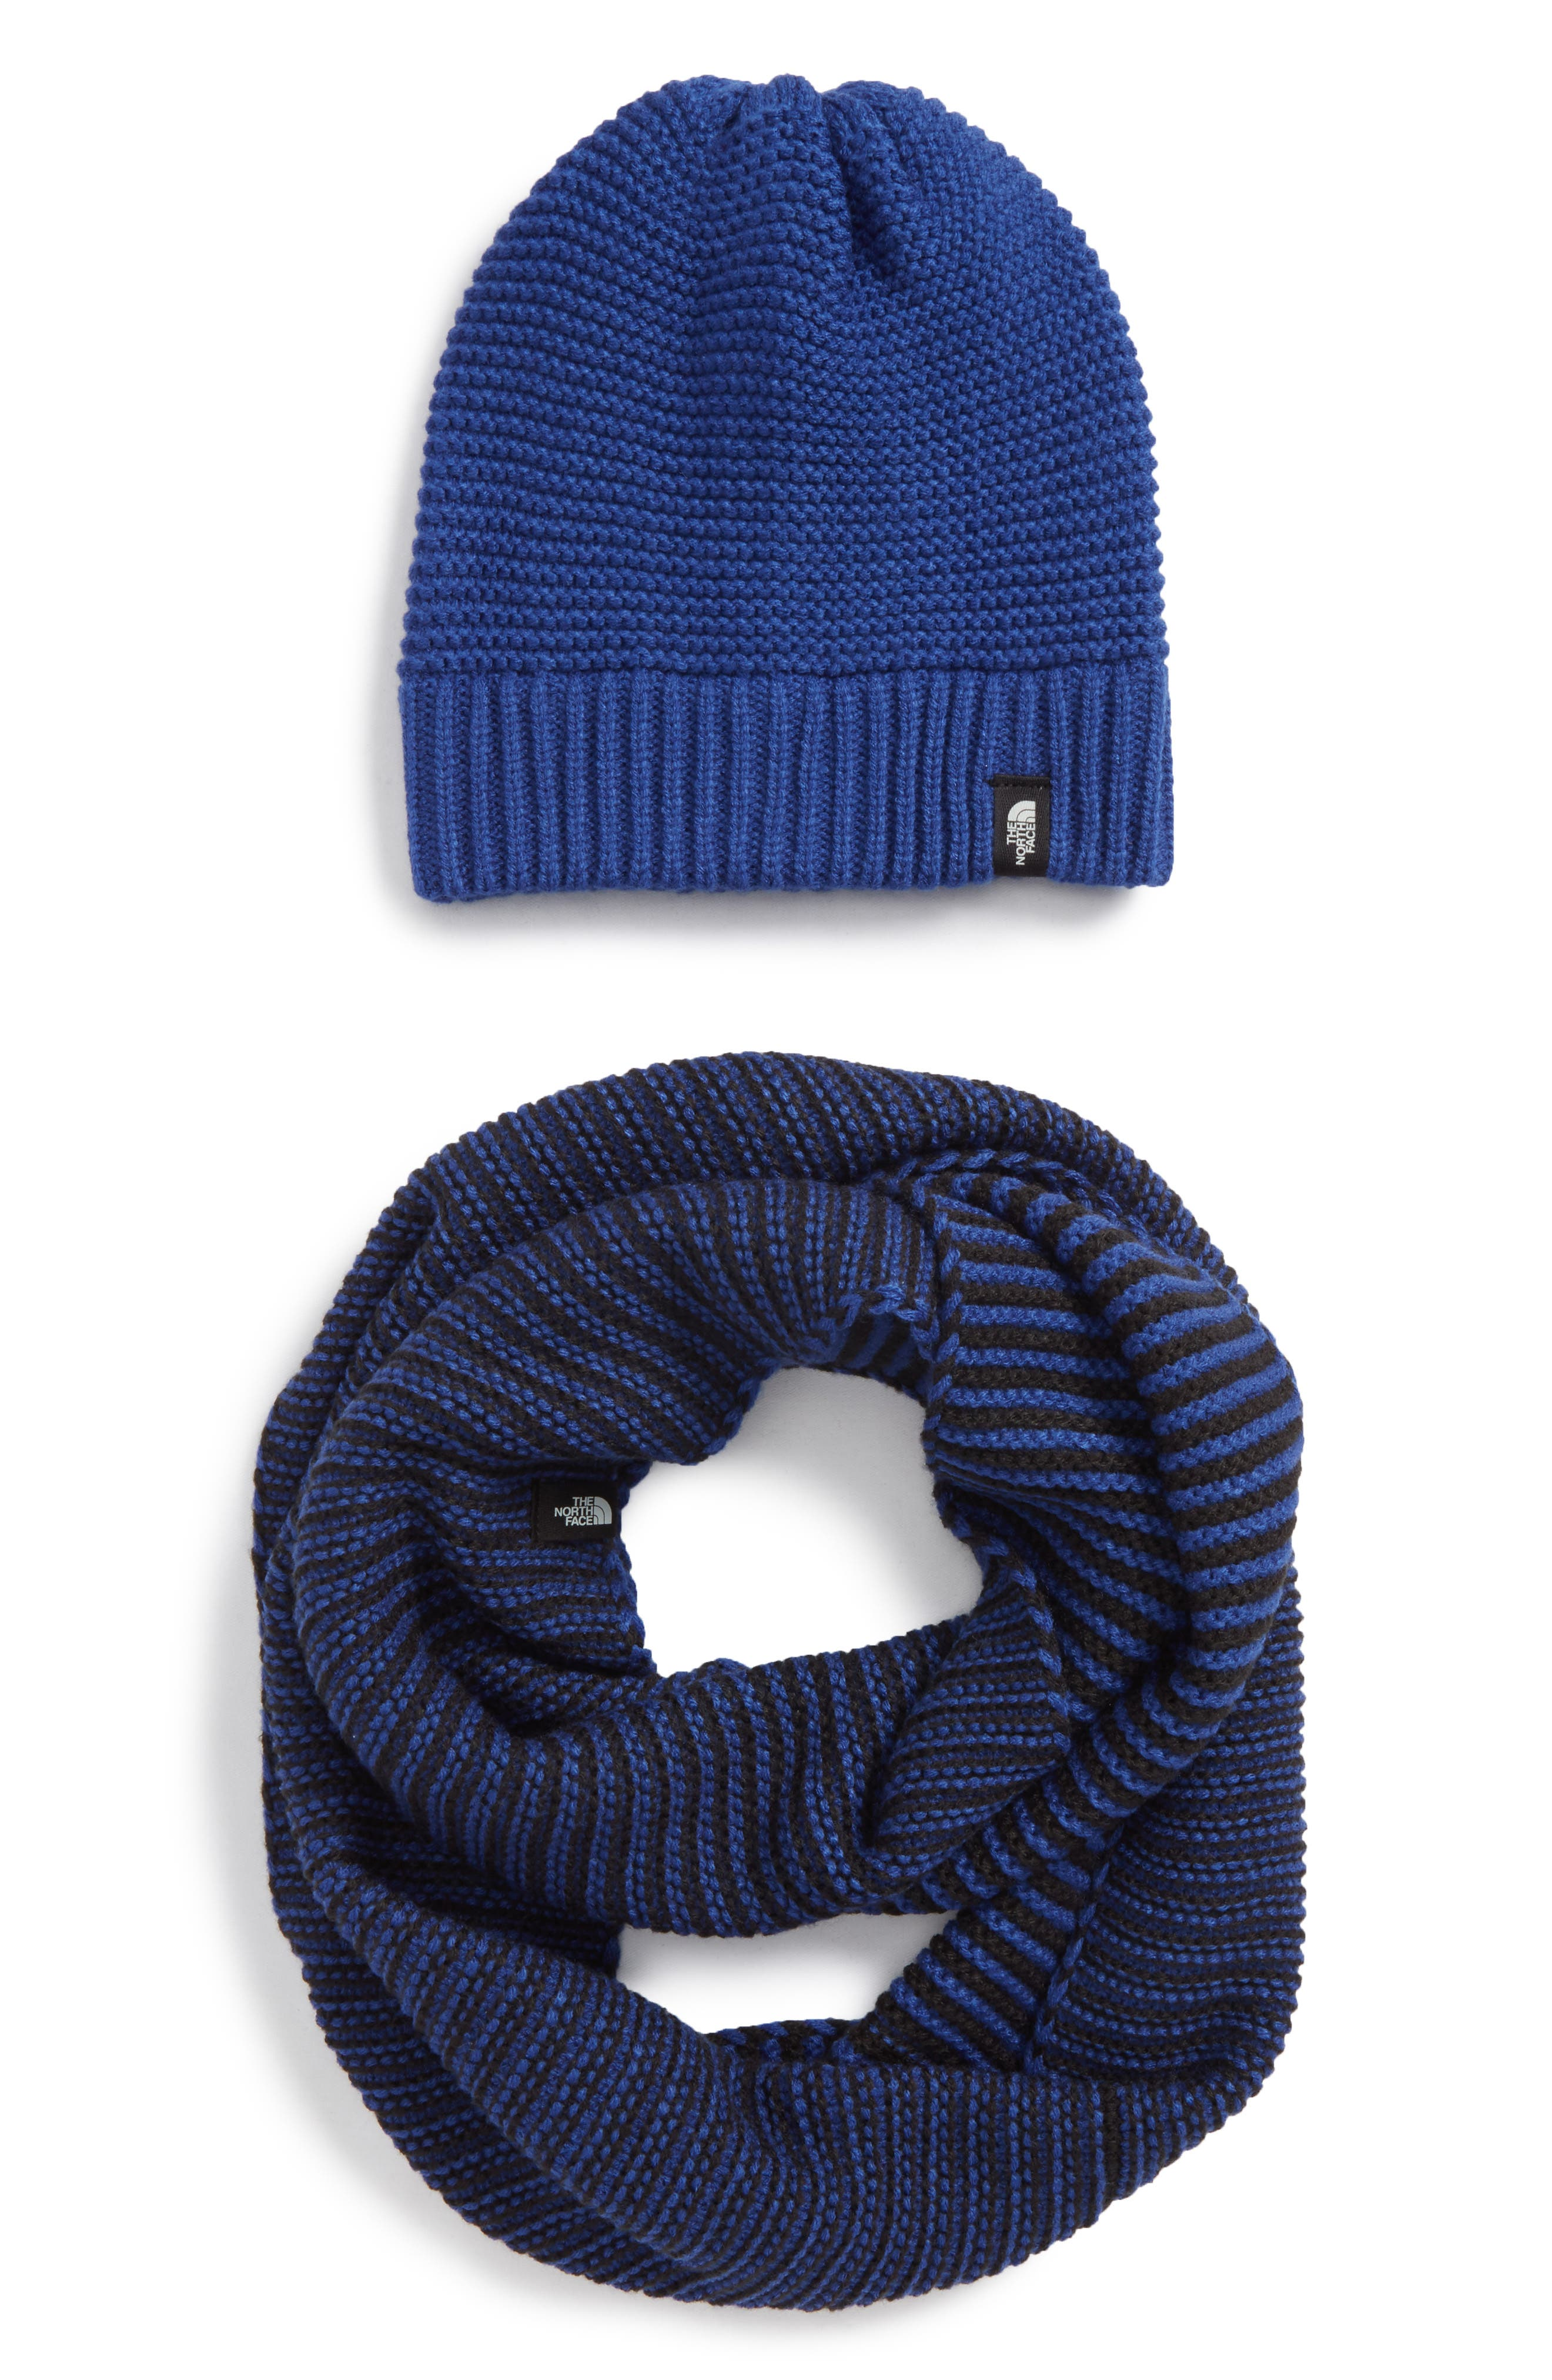 The North Face Purrl Stitch Beanie & Infinity Scarf Set